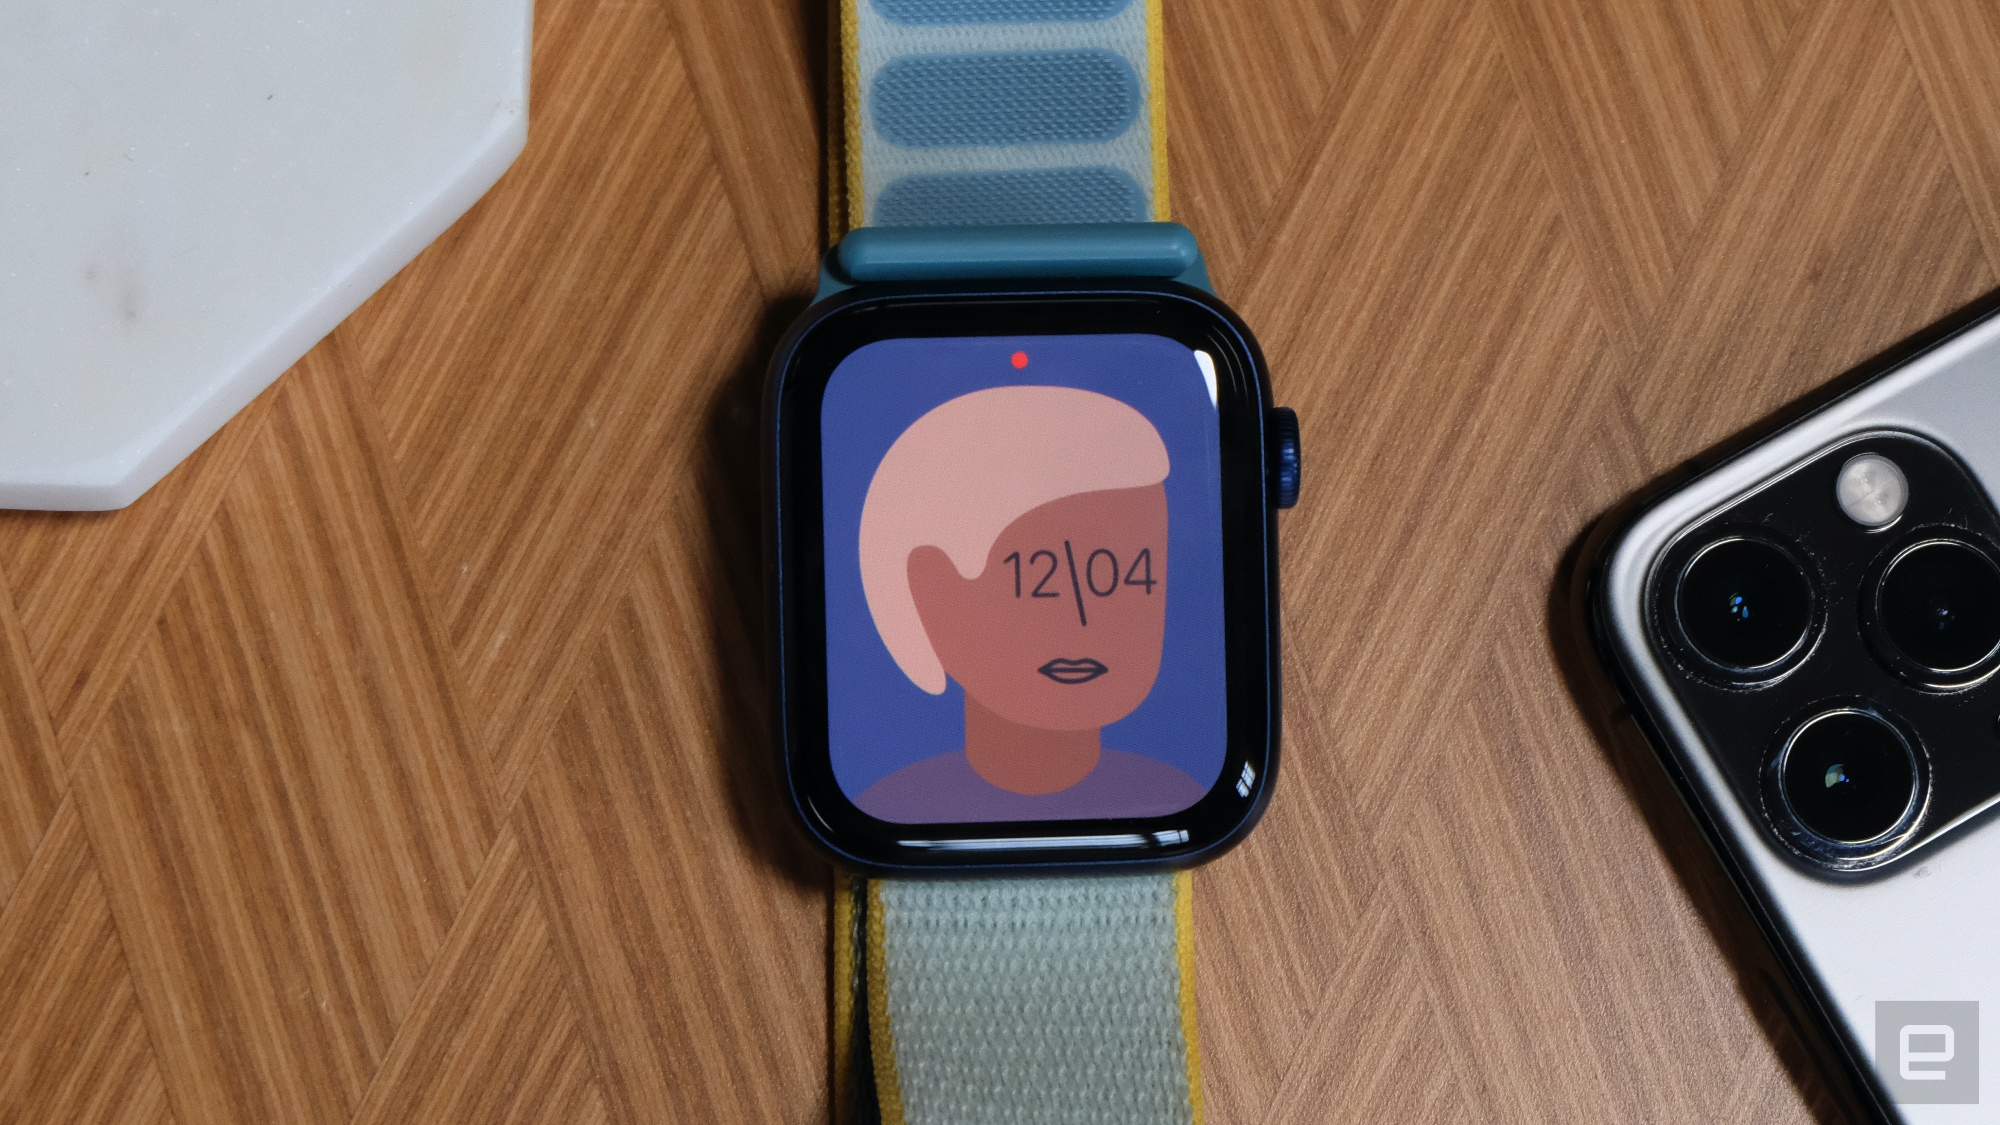 Apple Watch Series 6 review: The best new features are the boring ones